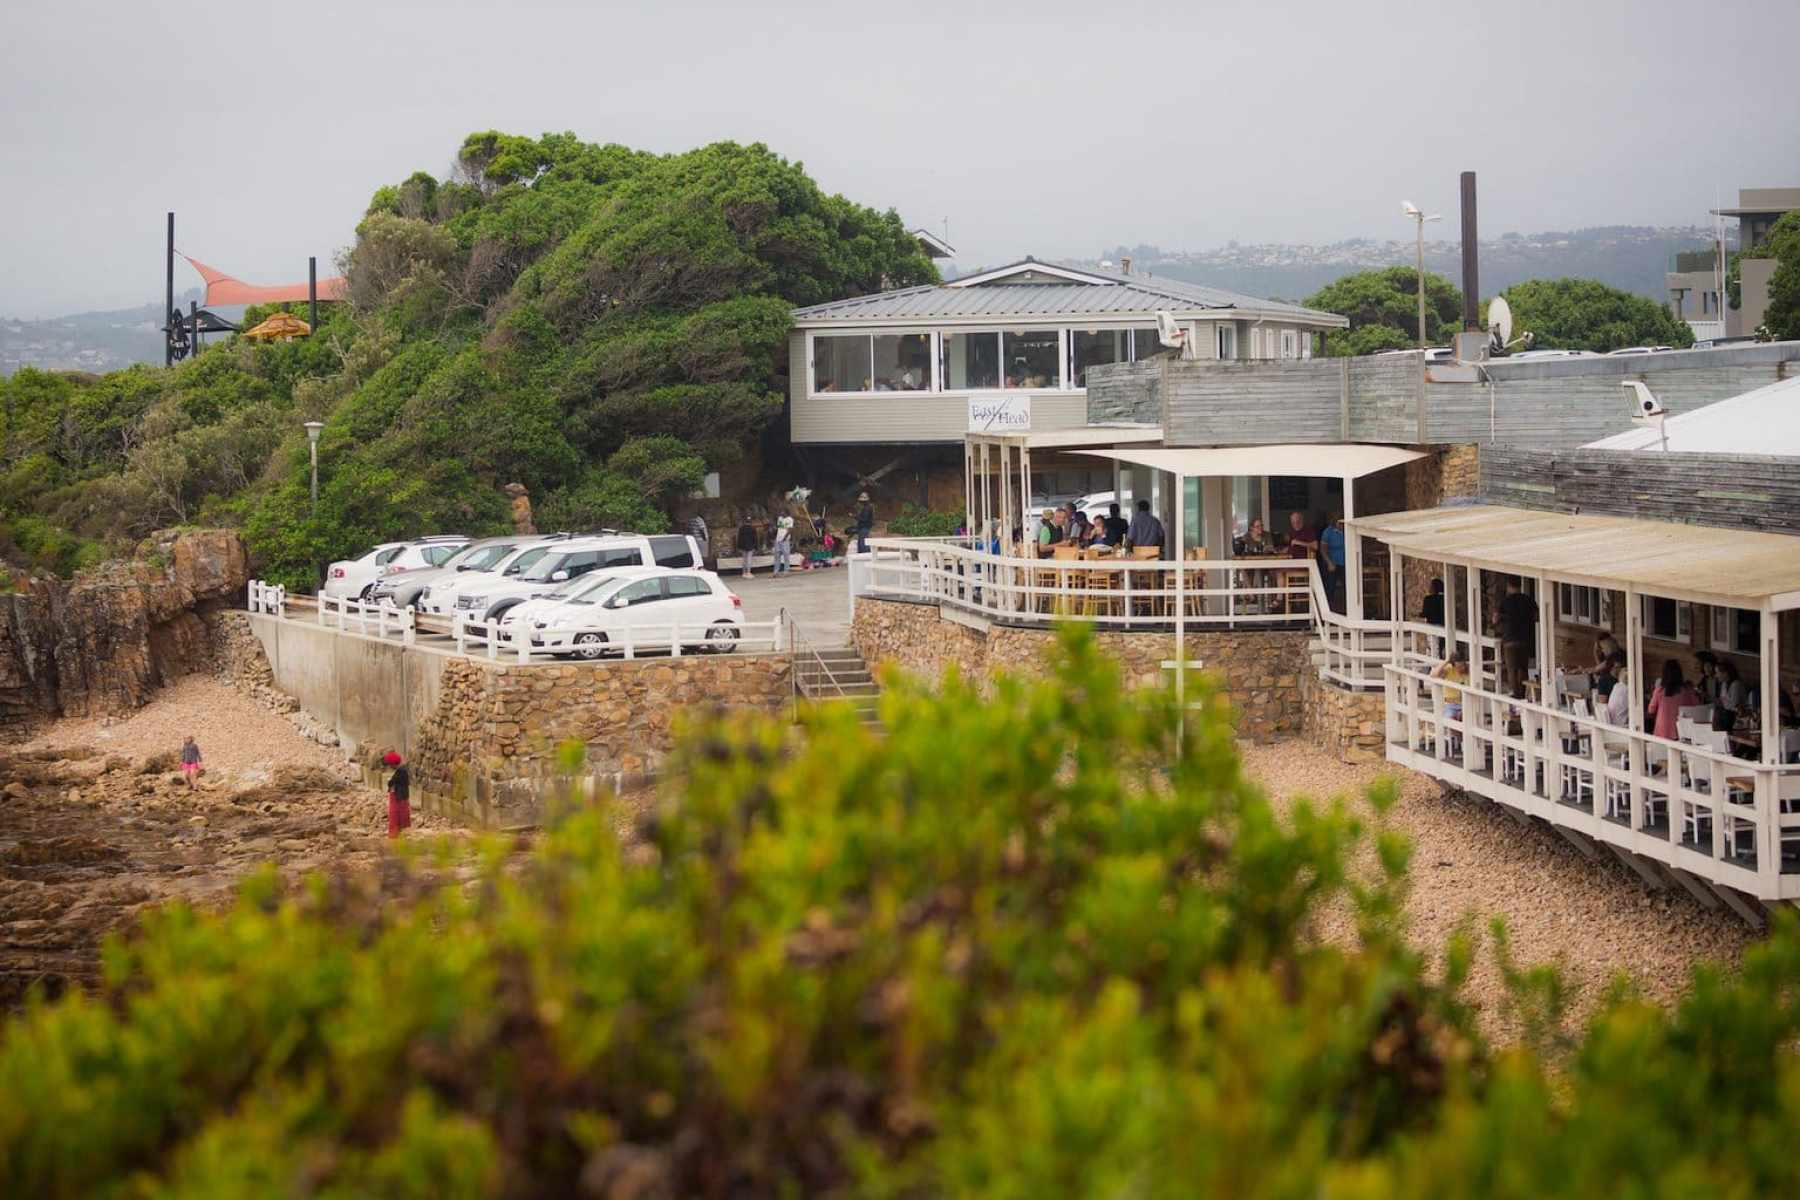 East Head Cafe and parking lot in Knysna